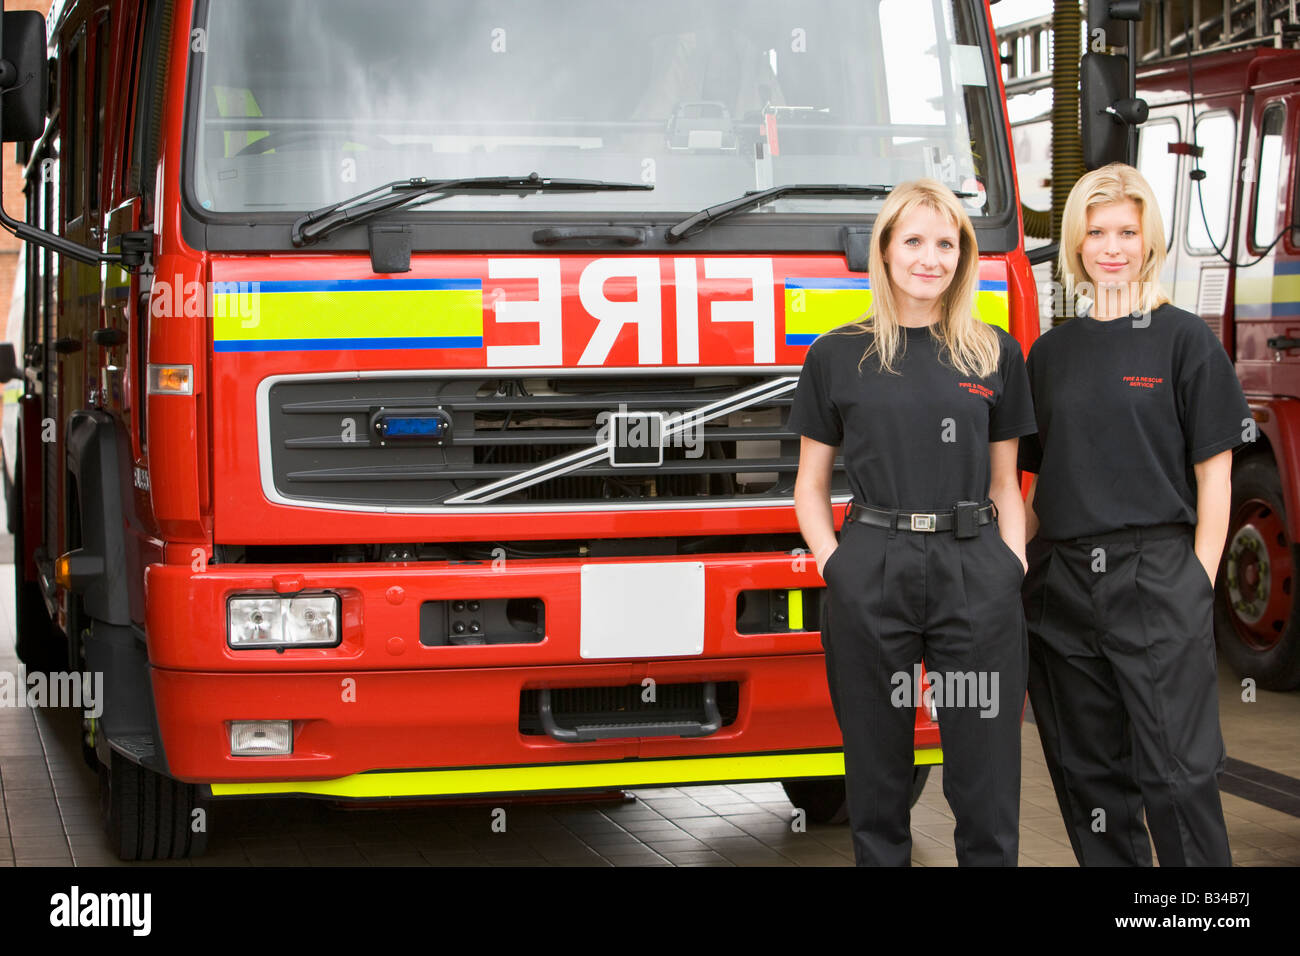 Two firefighters standing in front of fire engine - Stock Image